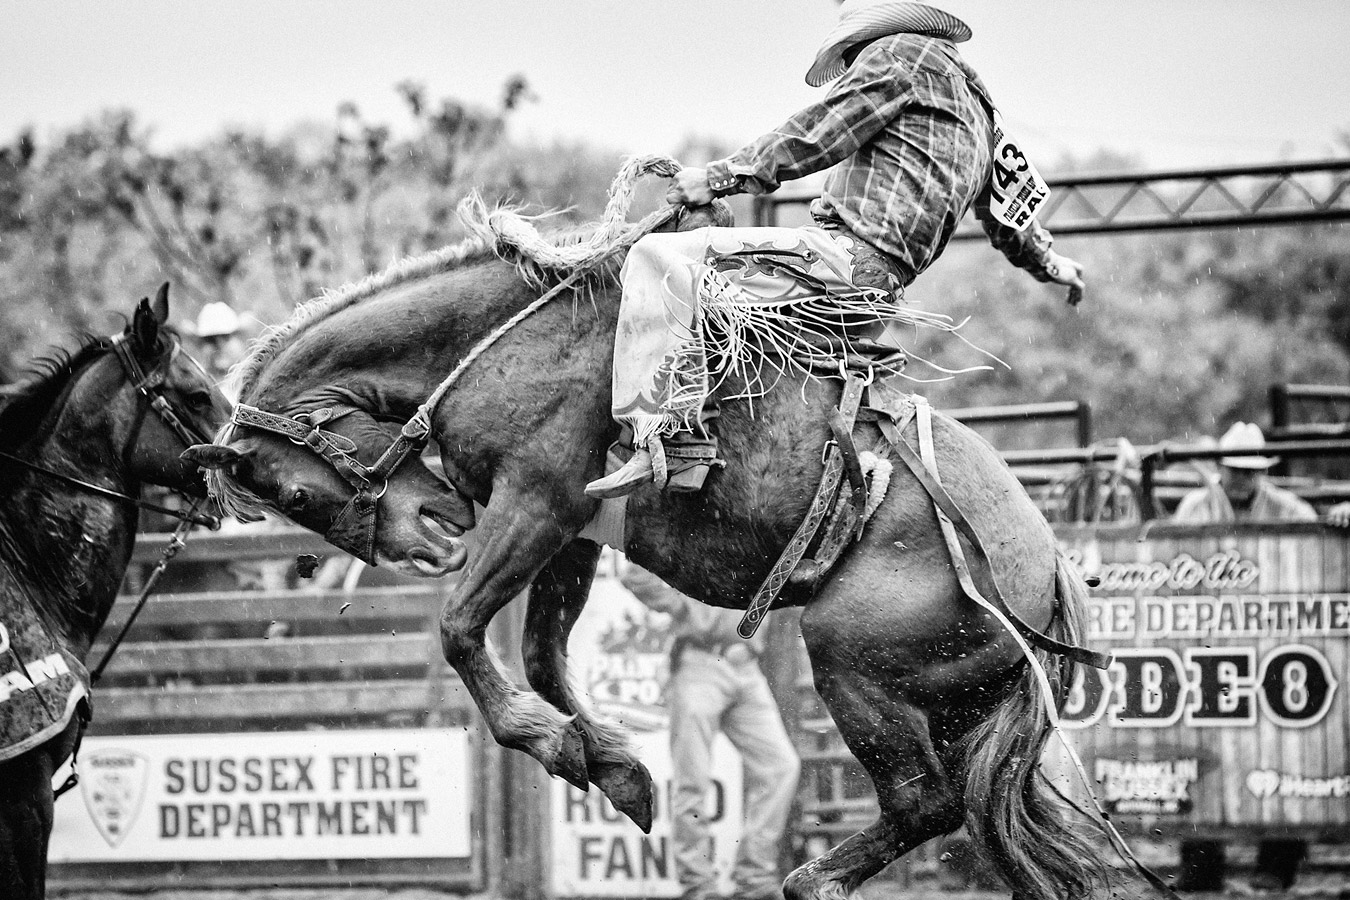 """Rodeo"", © Casey Martin, Gettysburg, PA, United States, People's Choice : First Deadline Winner, PDN Adrenaline 2019 - Sports and Action Photography"